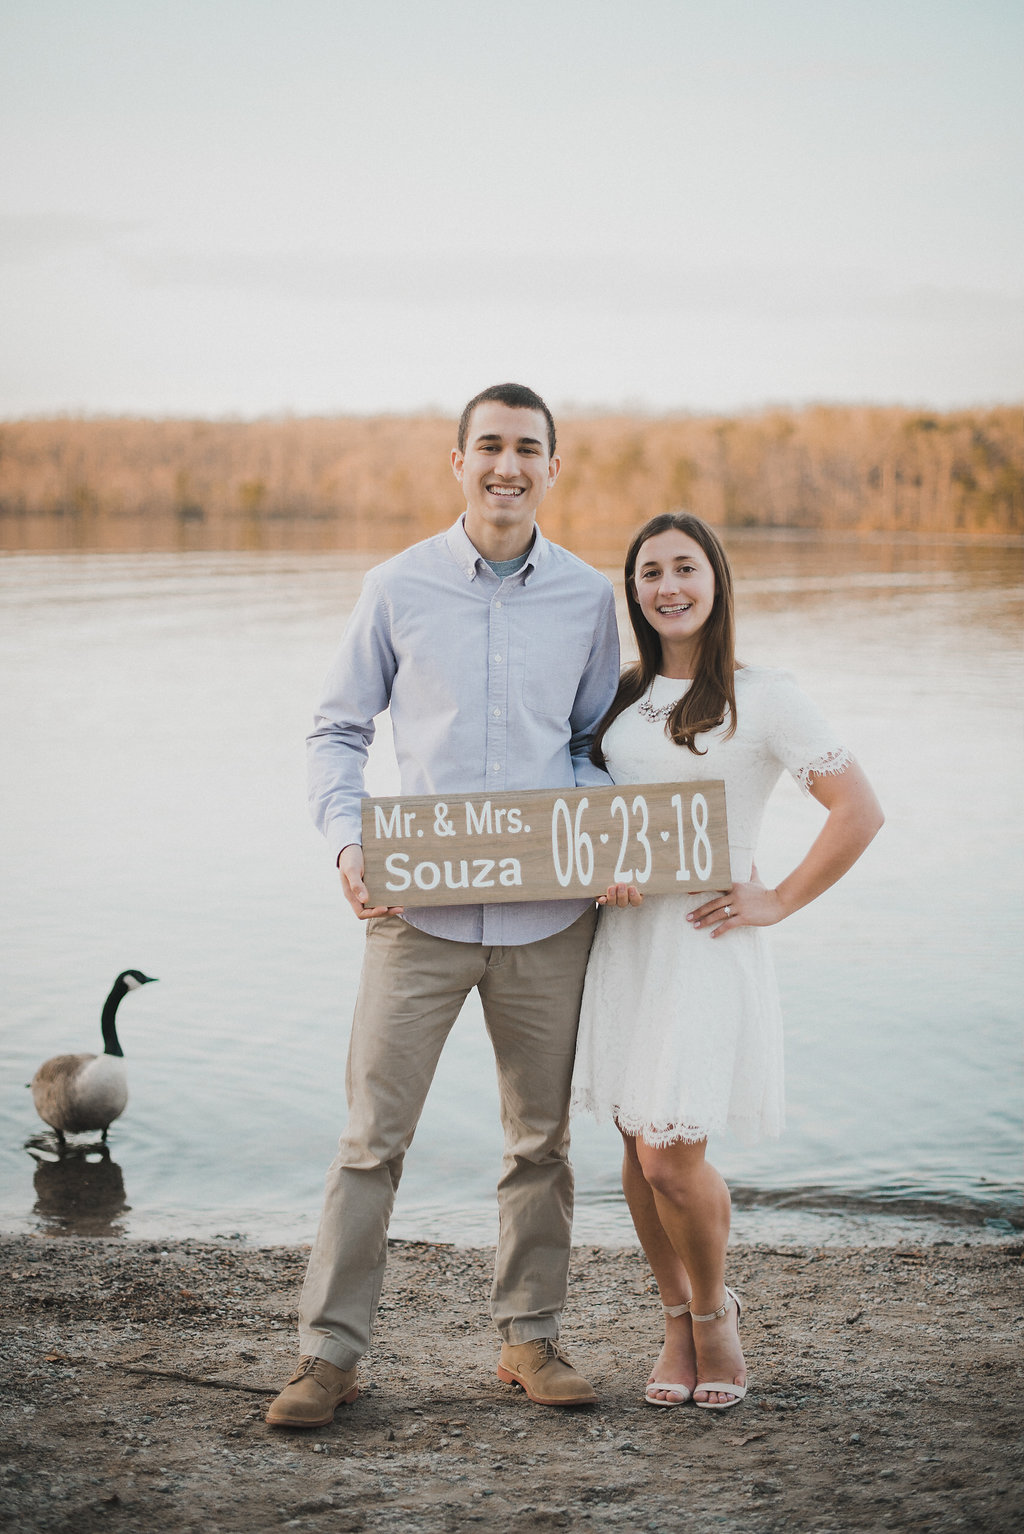 Couple with sign in front of lake